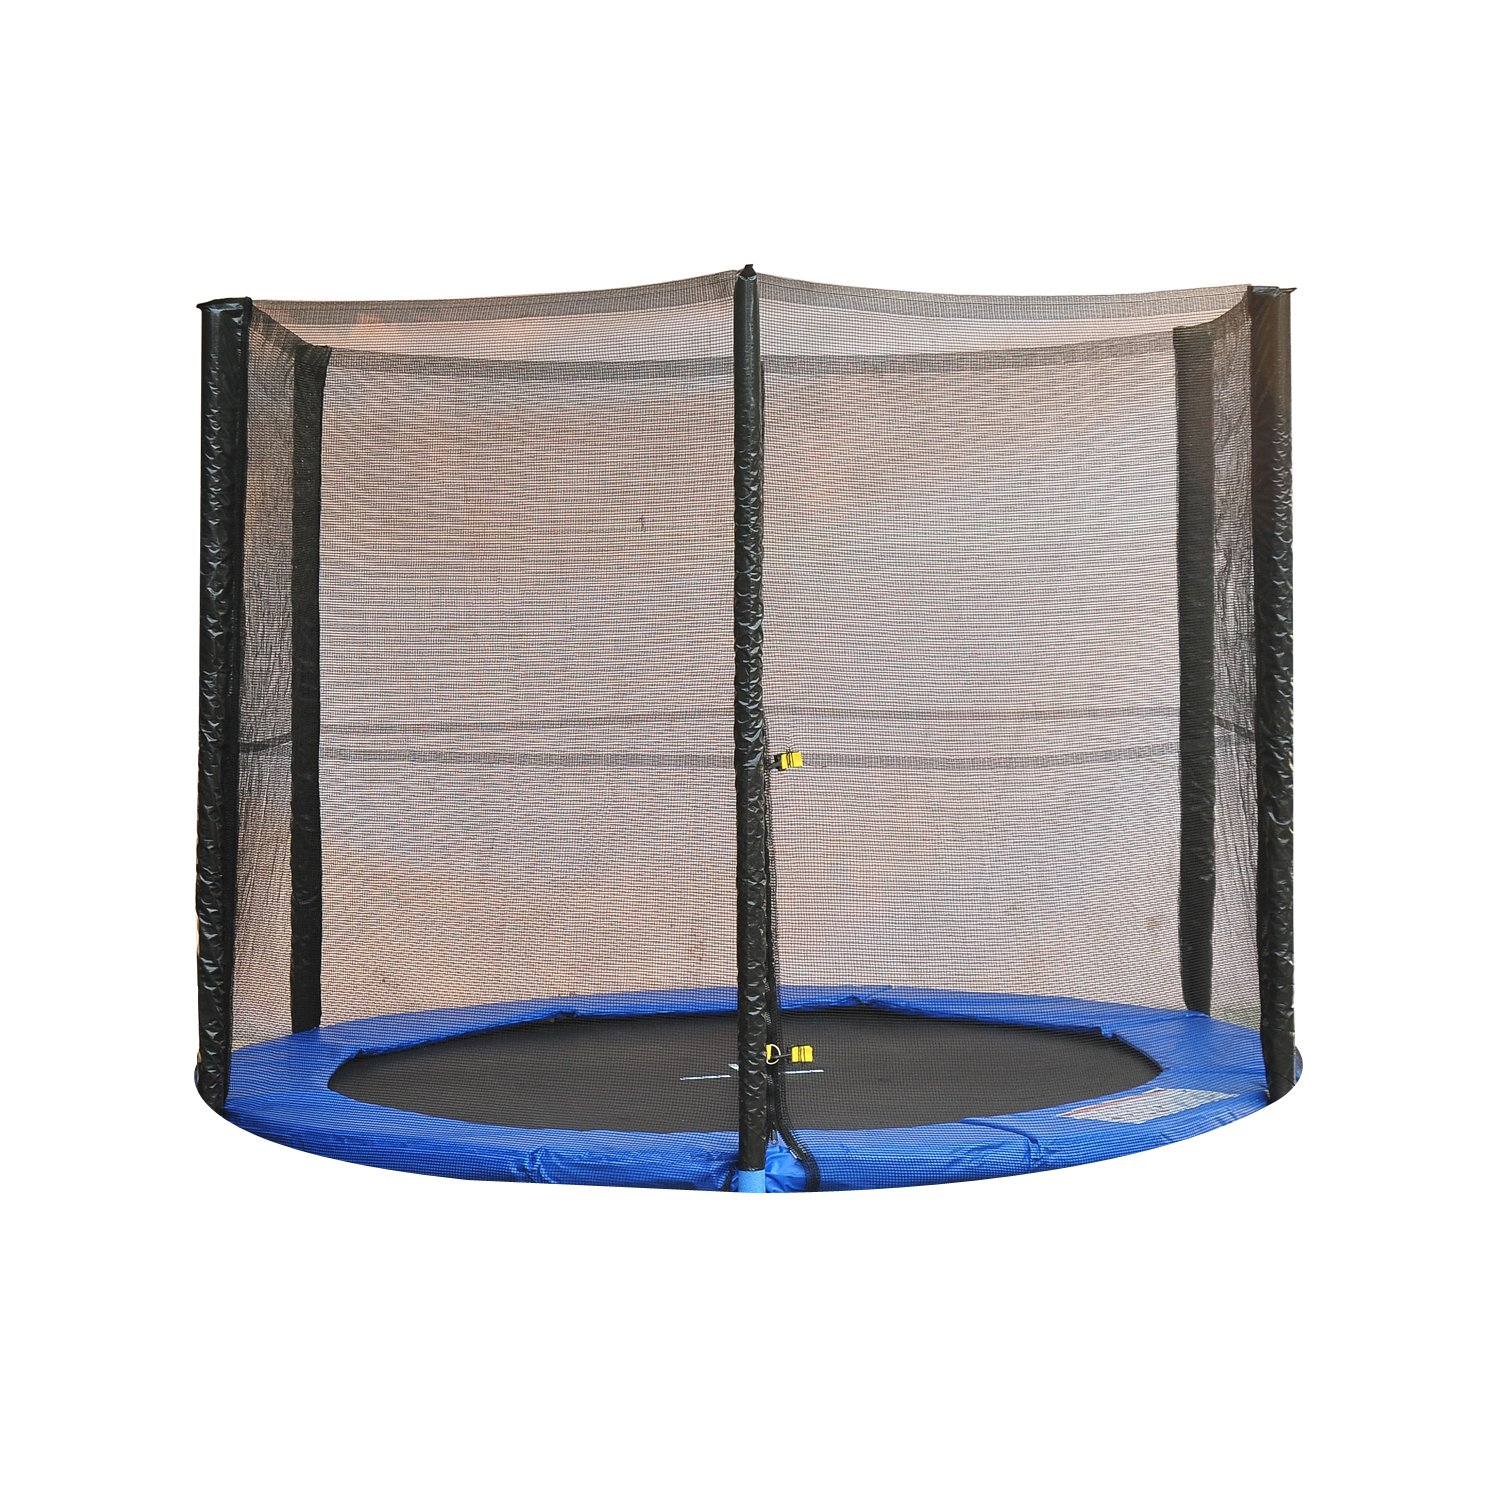 Best Rated In Trampoline Accessories & Helpful Customer